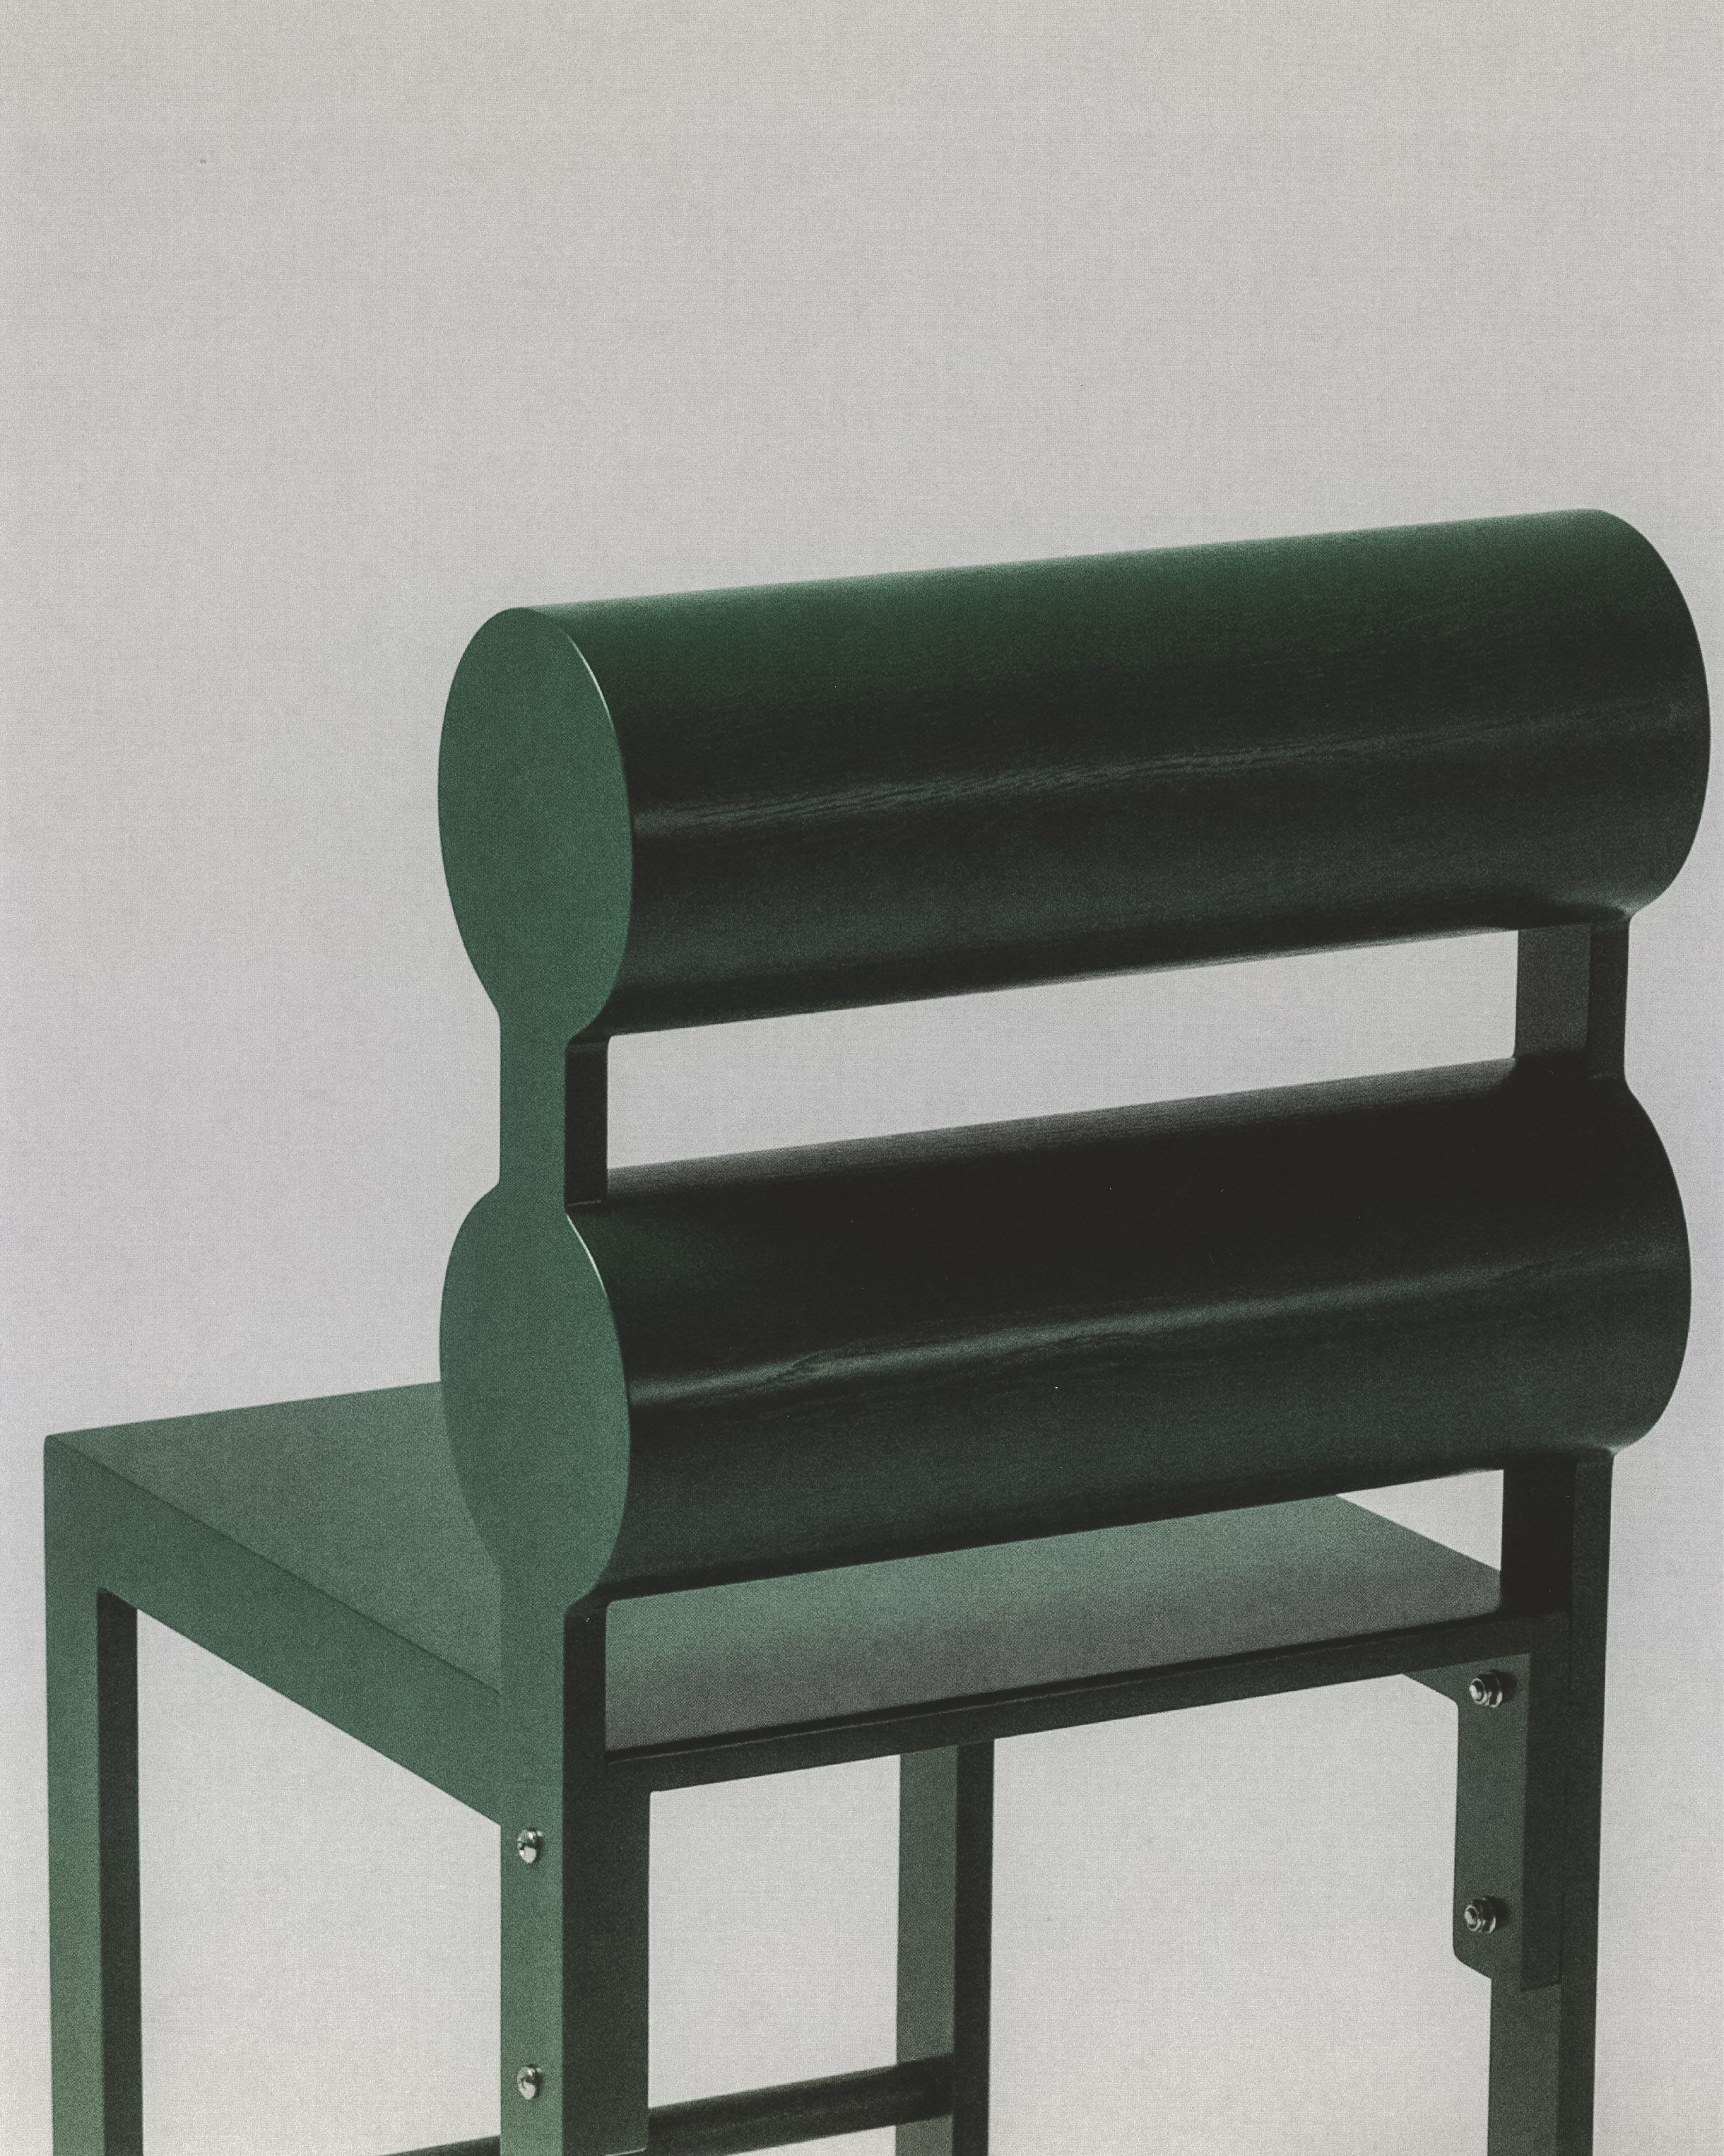 Green Double Cylinder Back product image 5